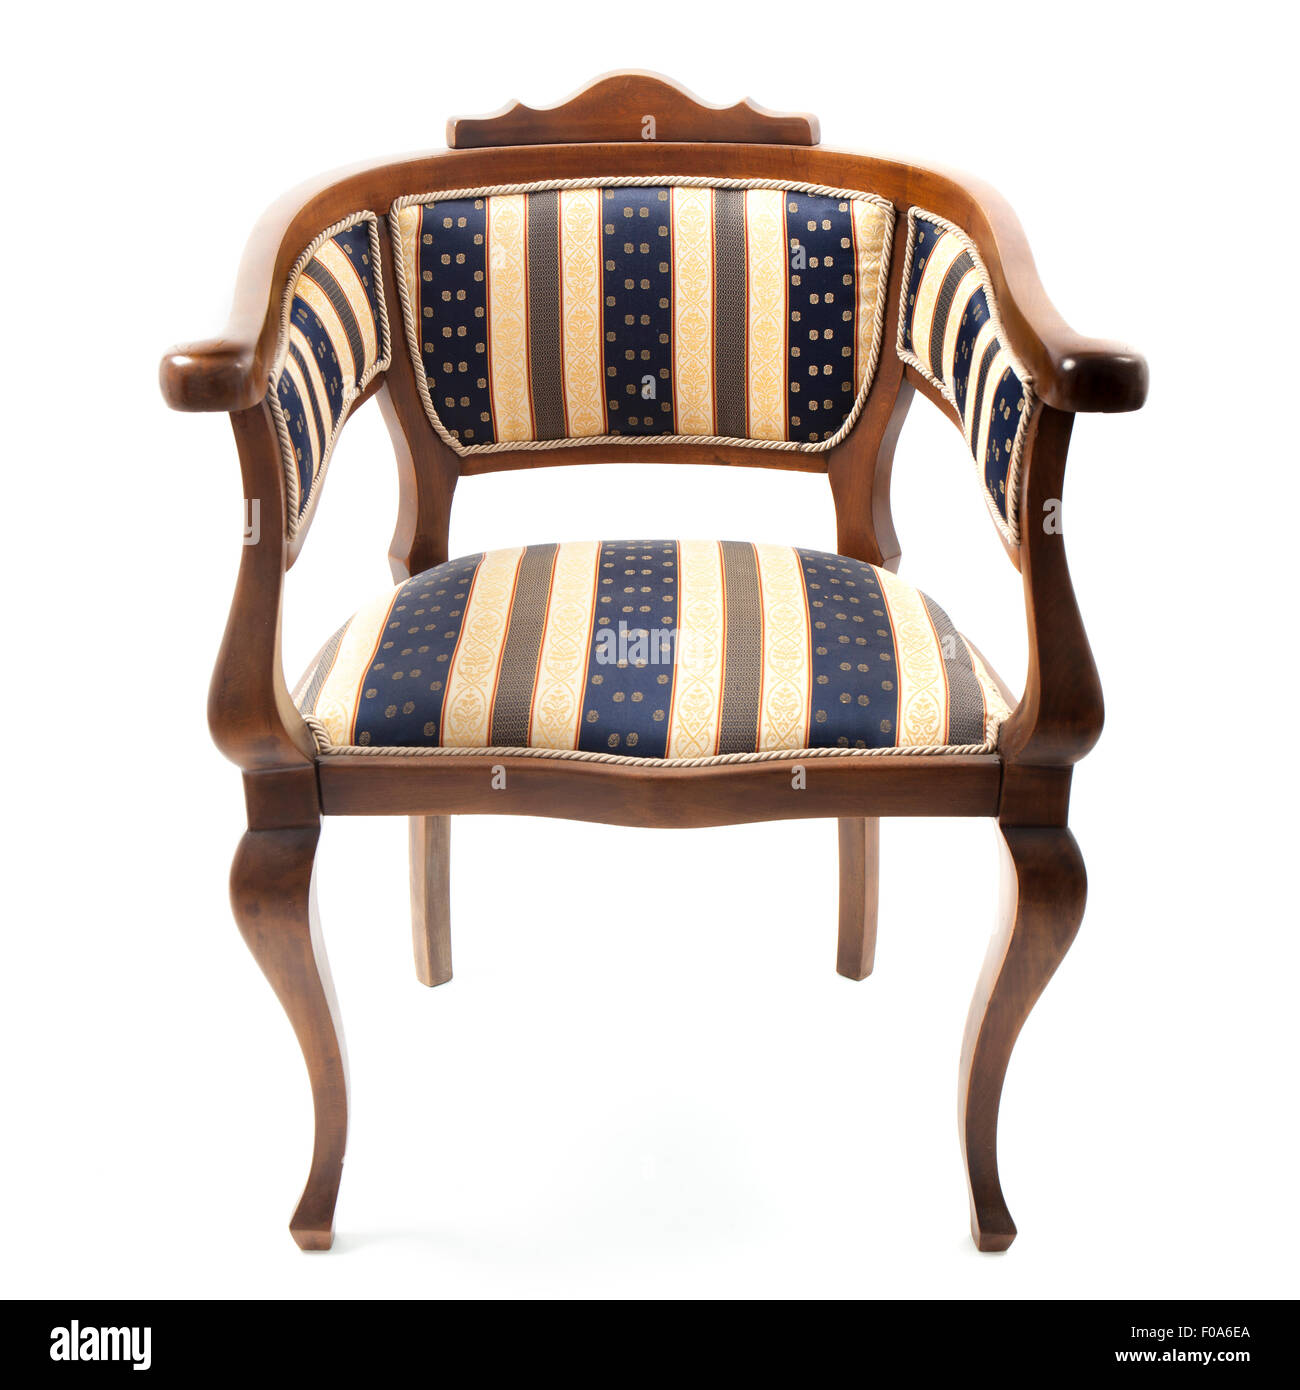 Image of an old retro style armchair upholstered in striped fabric. The chair is in the center of a square frame - Stock Image